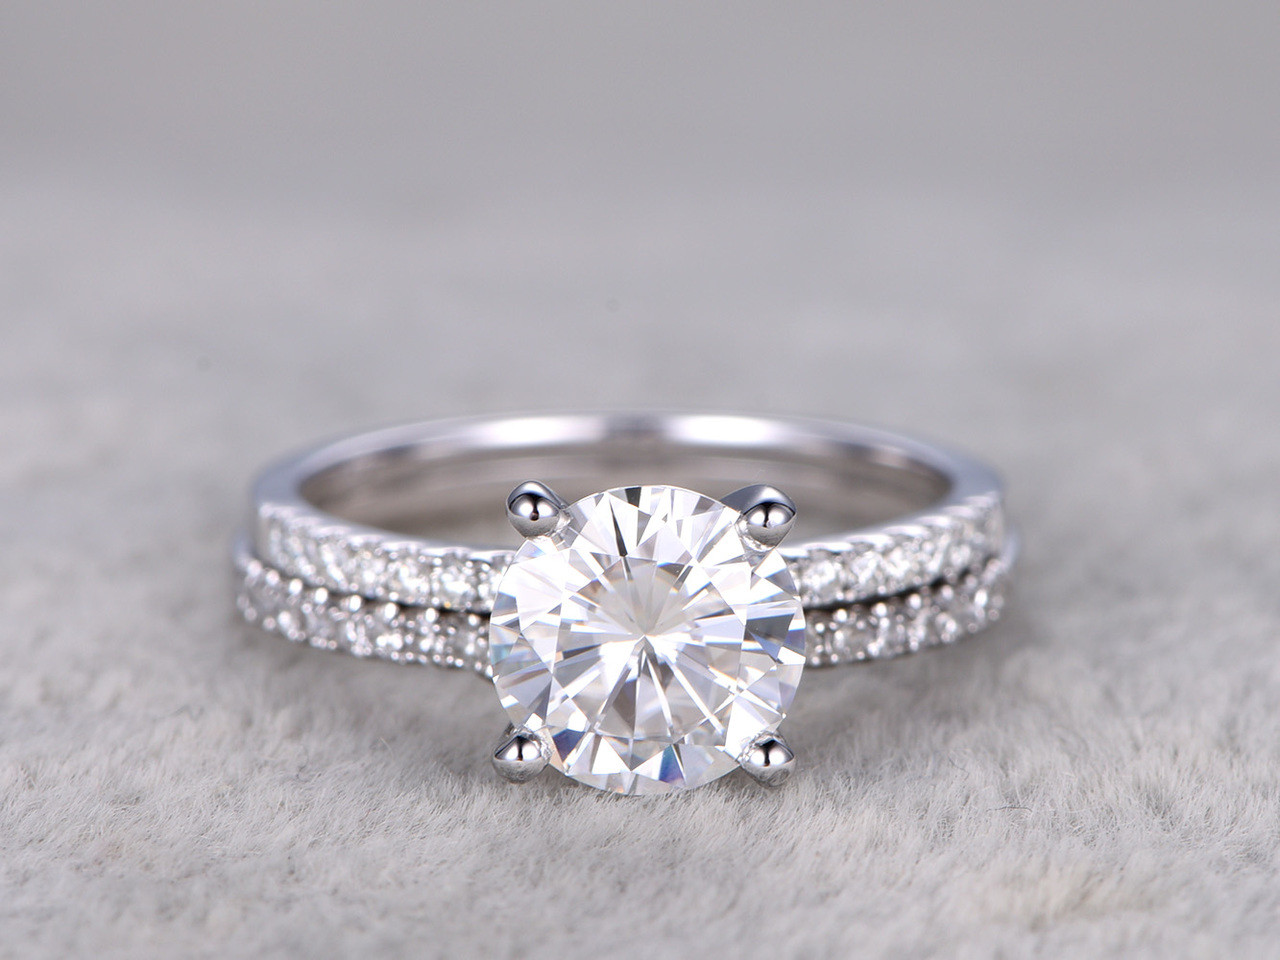 moissanite sterling wedding item diamond queen jewelry in from engagement brilliance fine platinum jewerly ring silver women plated lab grown rings